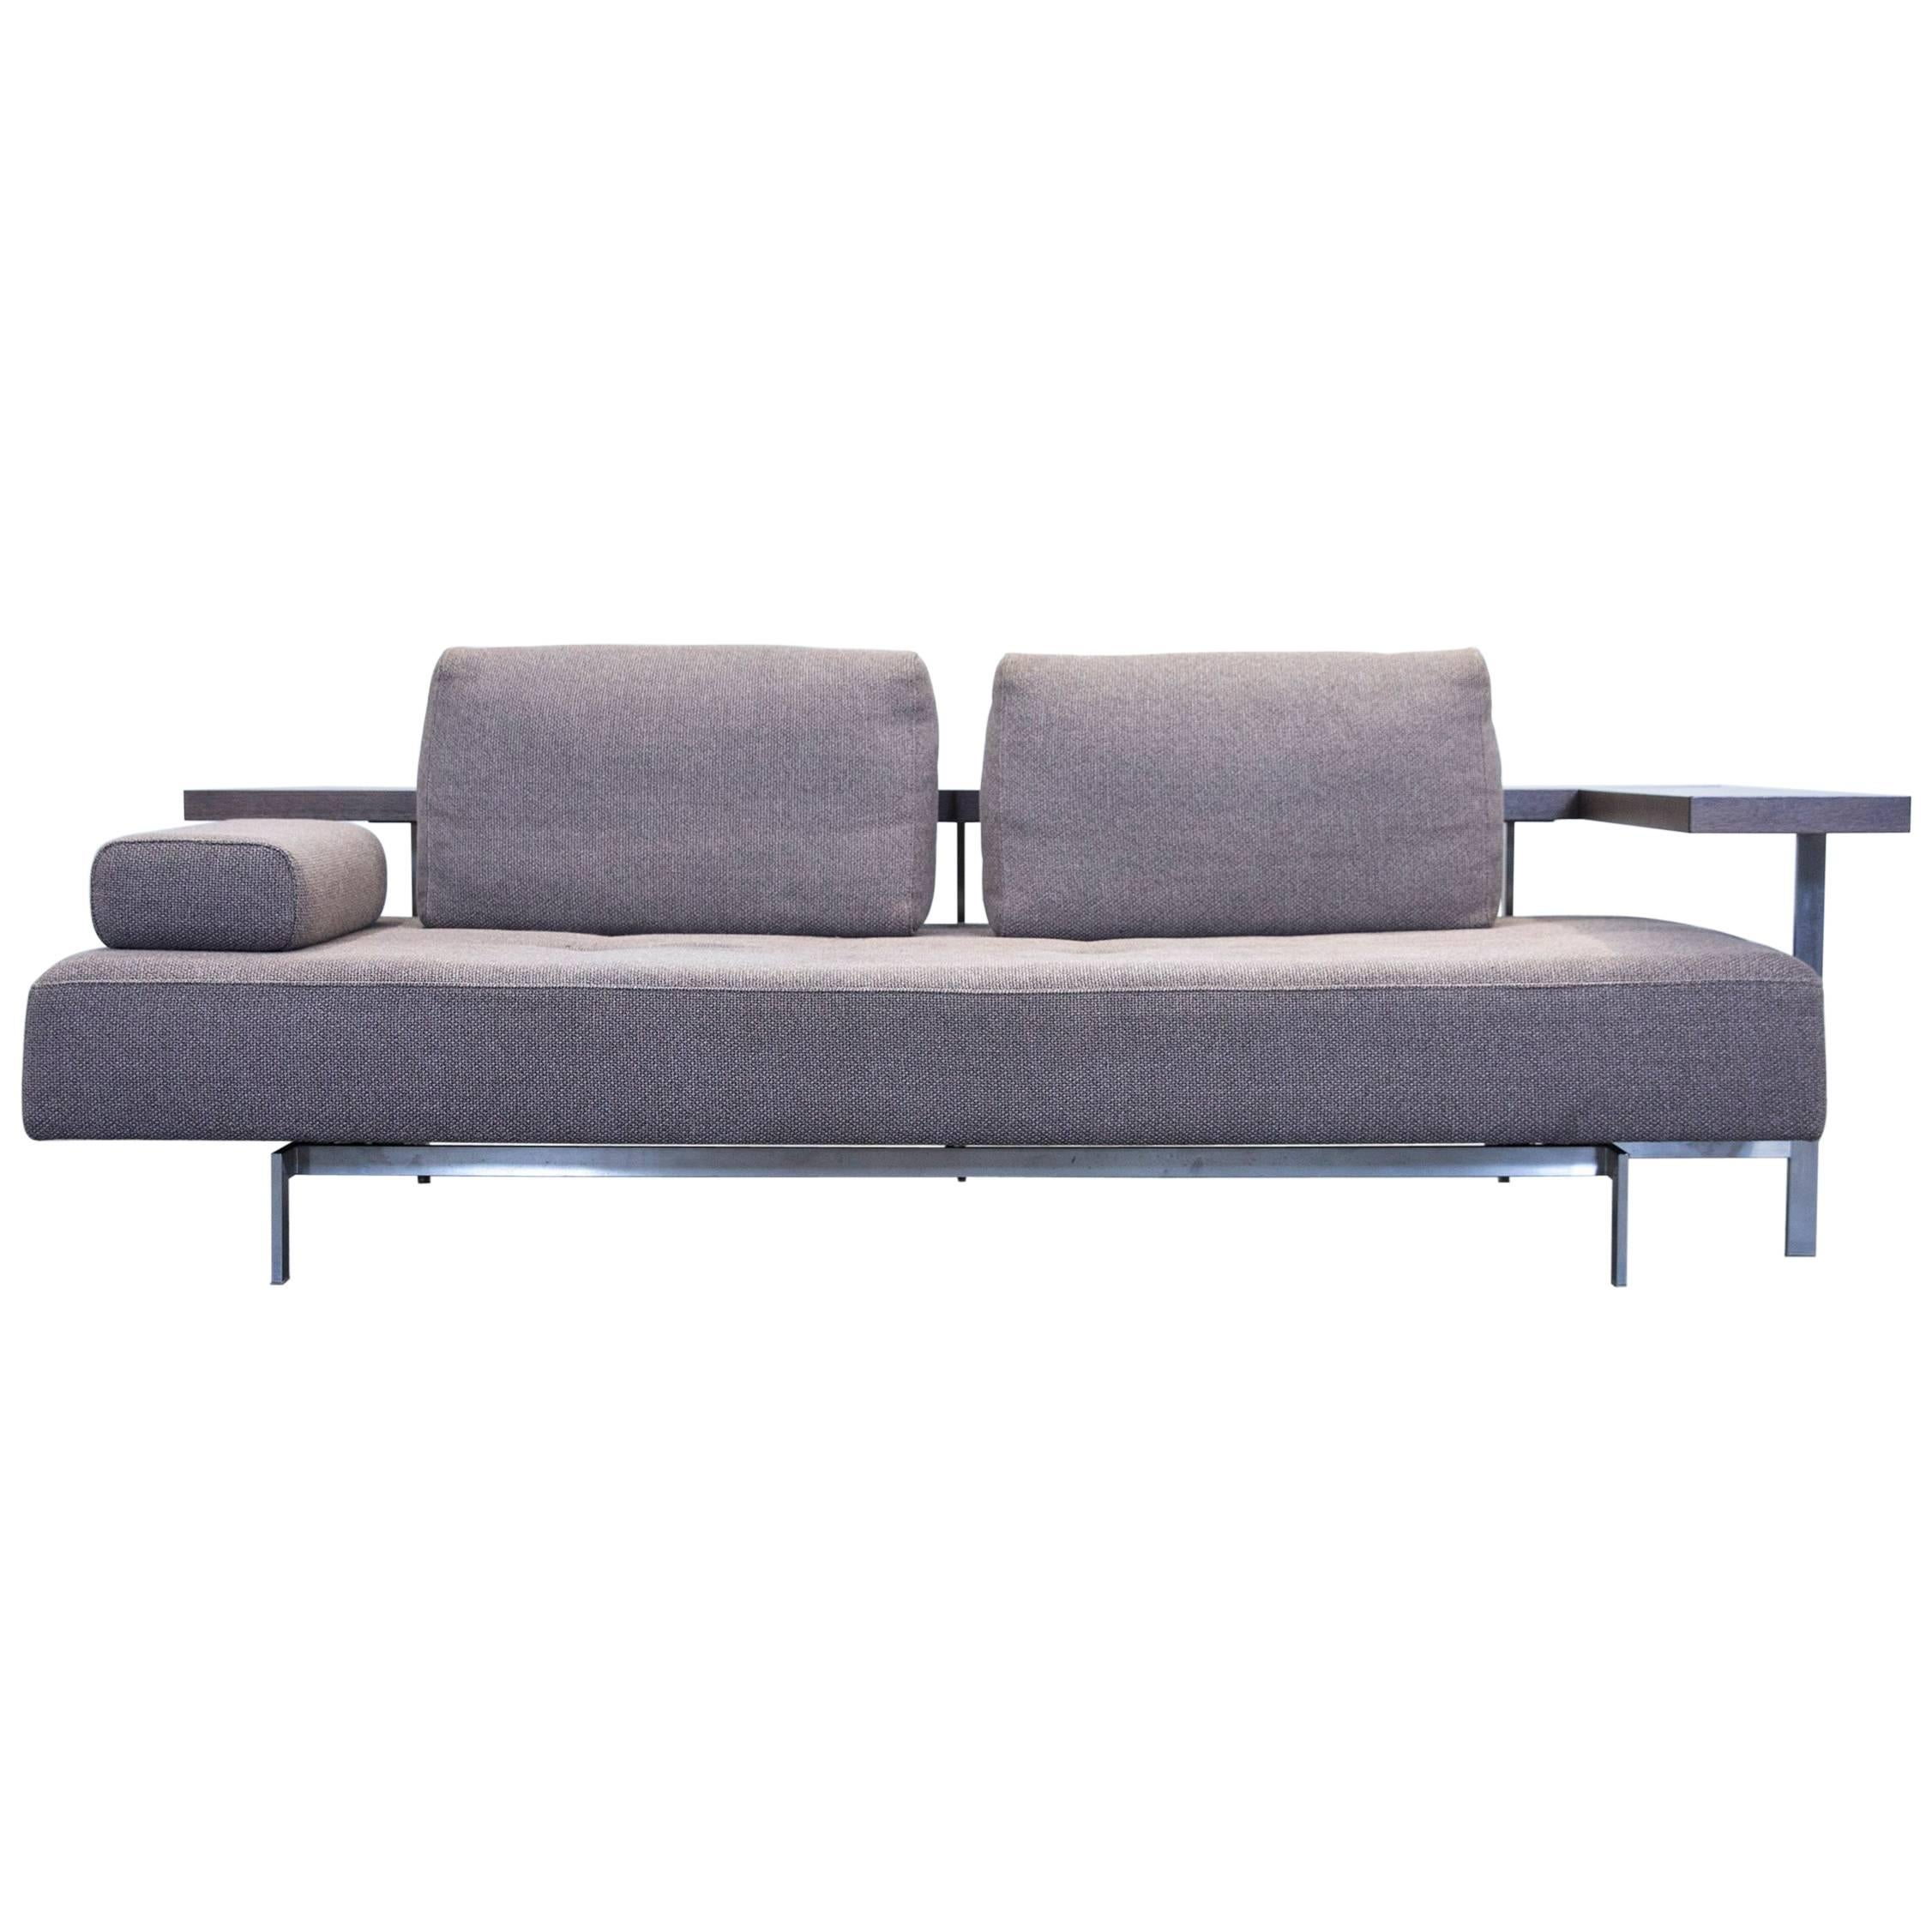 sofa benz simple click here to see a larger picture with sofa benz good comfortable rolf benz. Black Bedroom Furniture Sets. Home Design Ideas